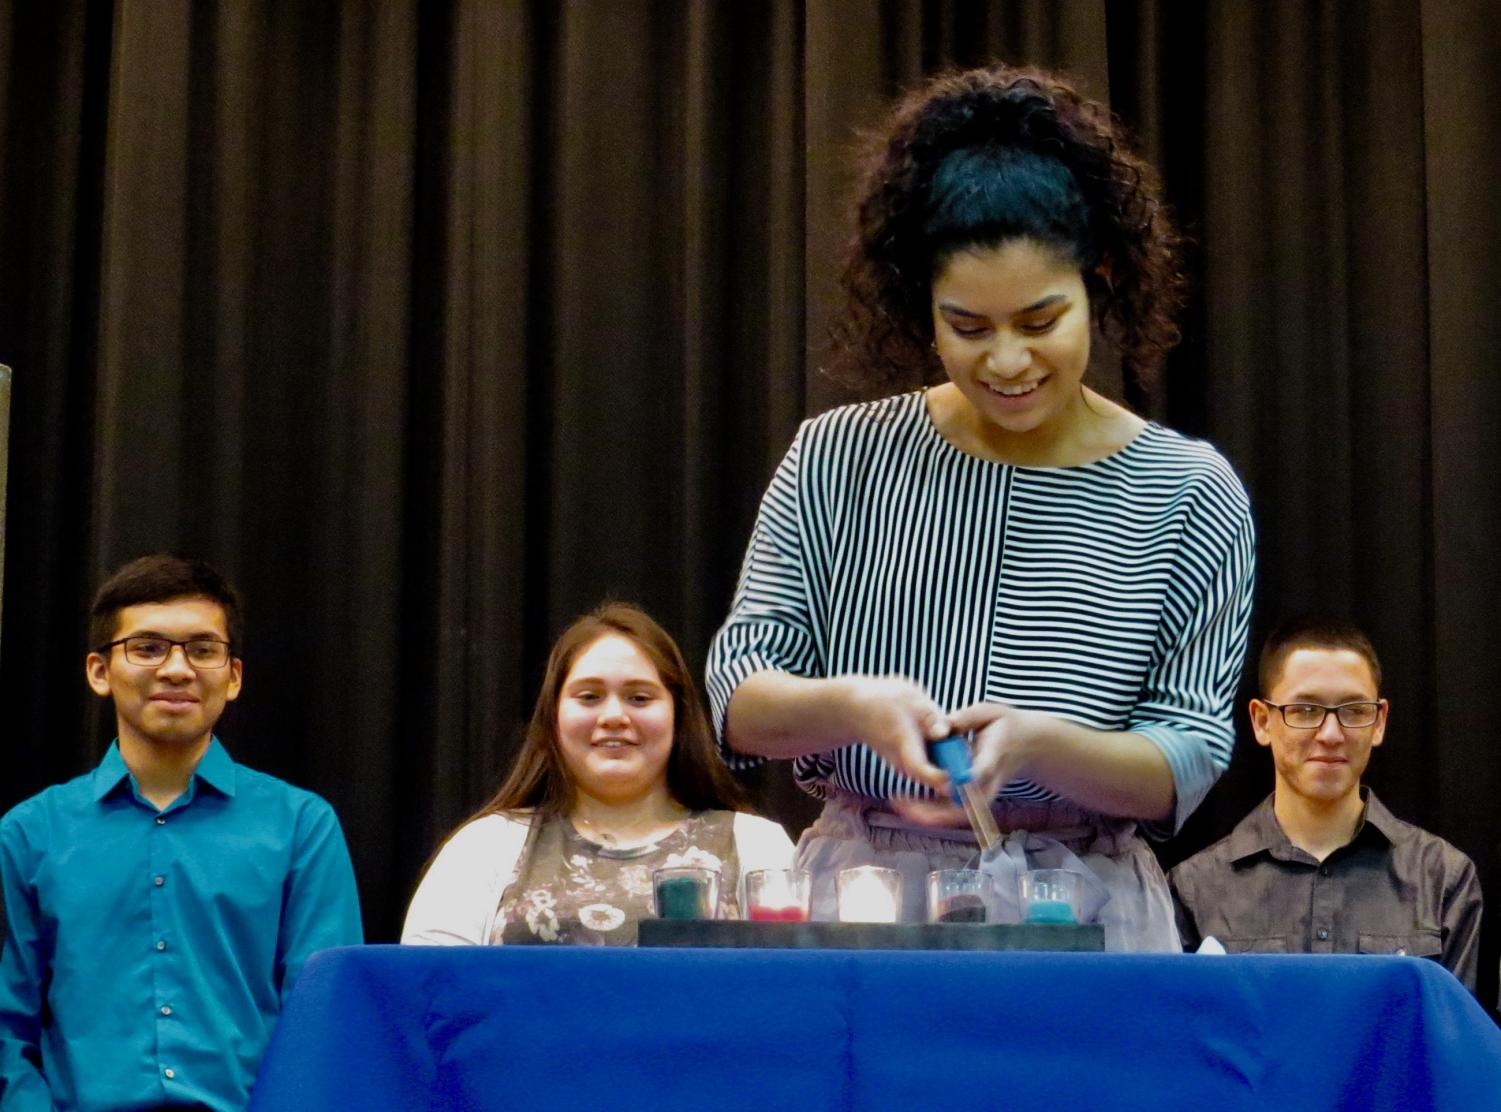 Nayeli Cruz assisting  with the National Honor Society Induction Ceremony.